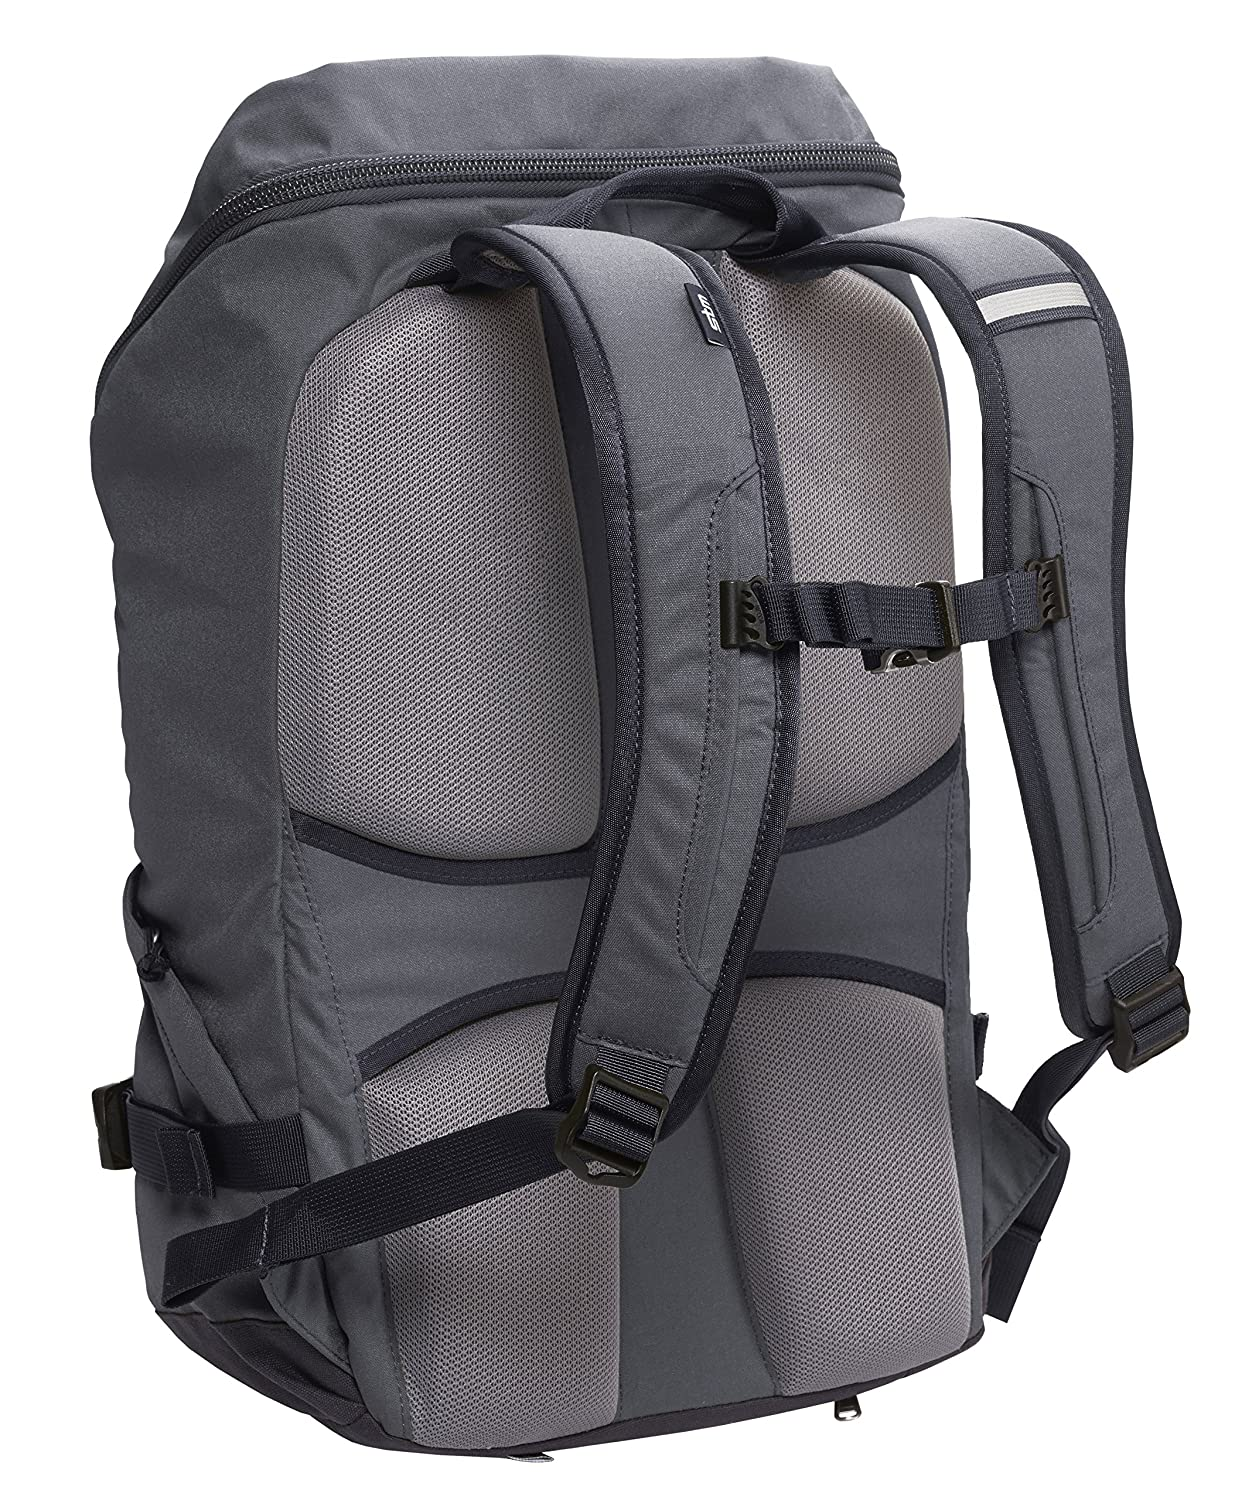 Amazon.com: STM Drifter, Laptop Backpack for 15-Inch Laptop ...